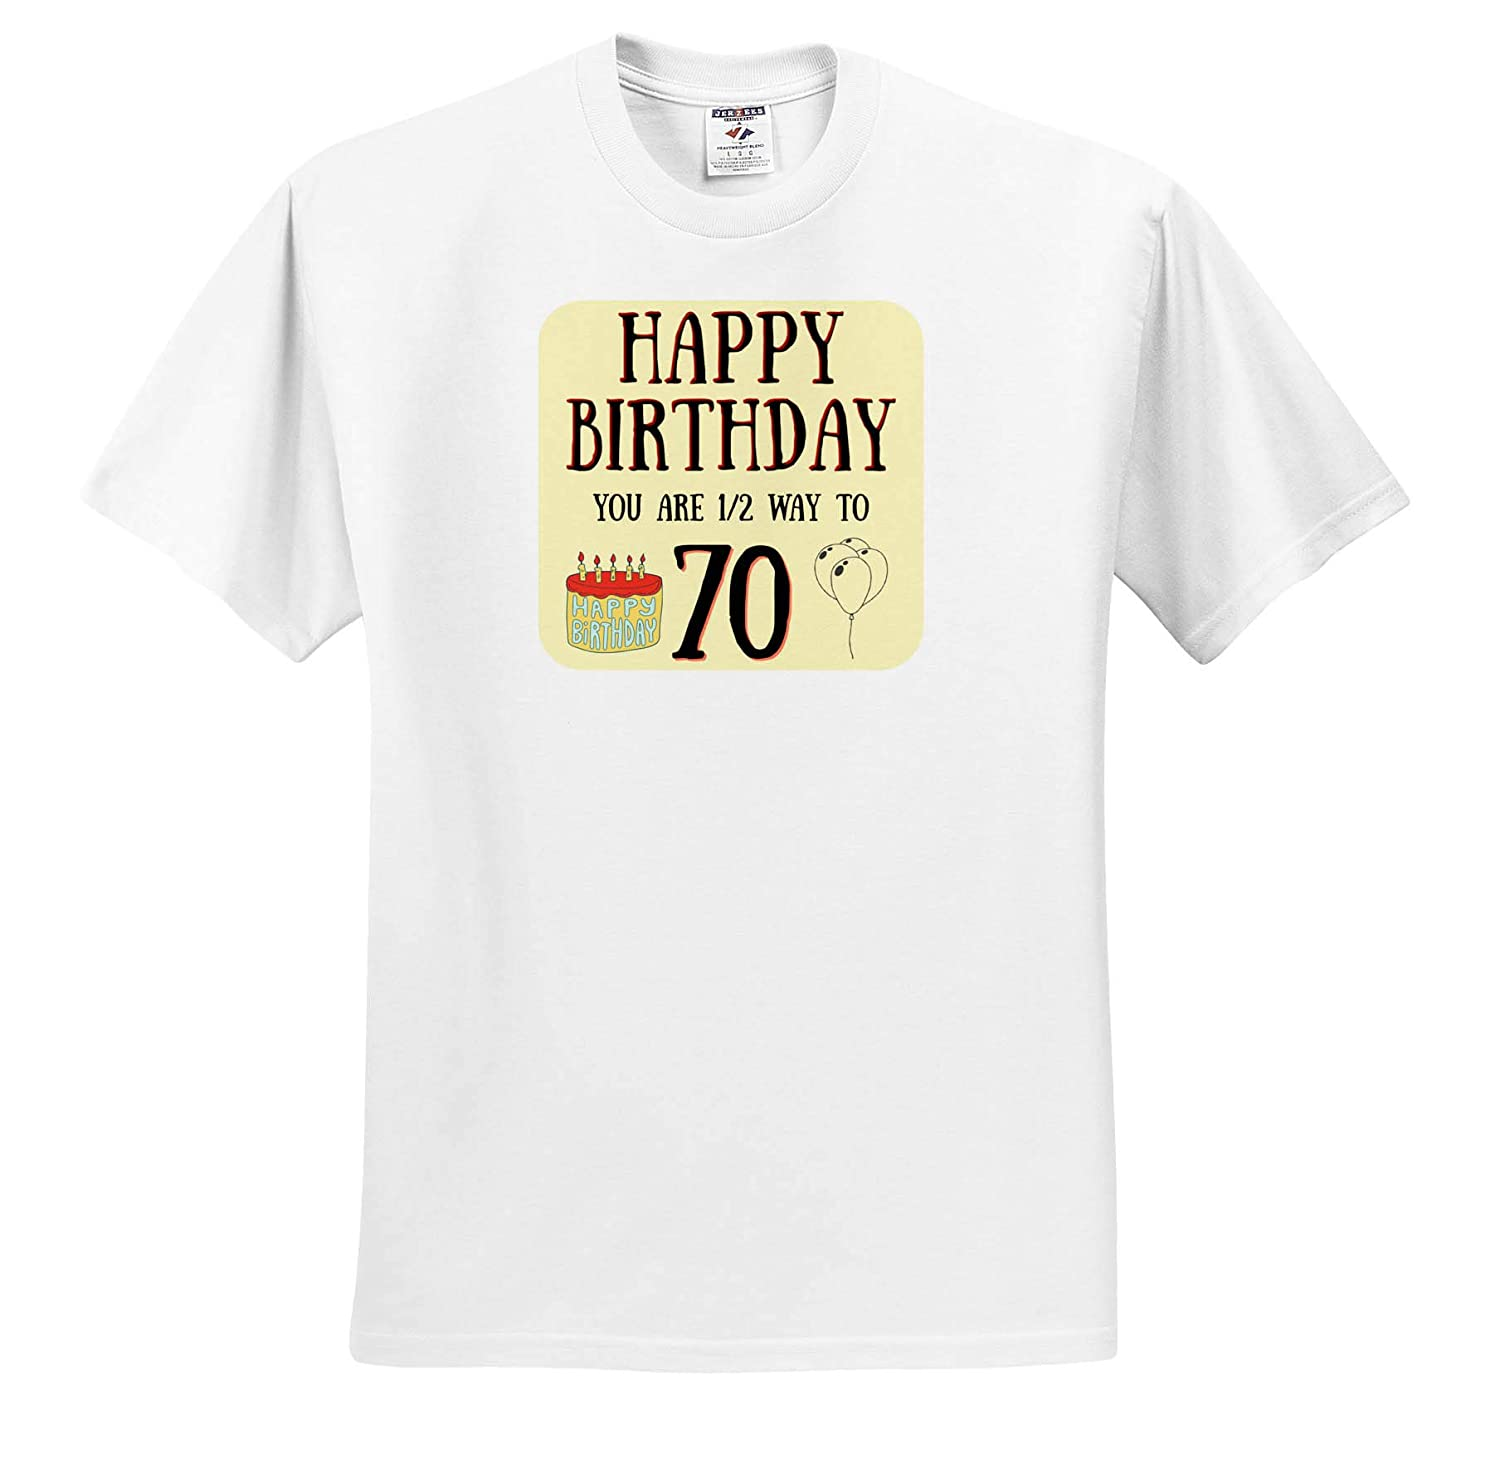 ts/_320194 Image of Happy Birthday You are Half Way to 70 Adult T-Shirt XL 3dRose Carrie Quote Image